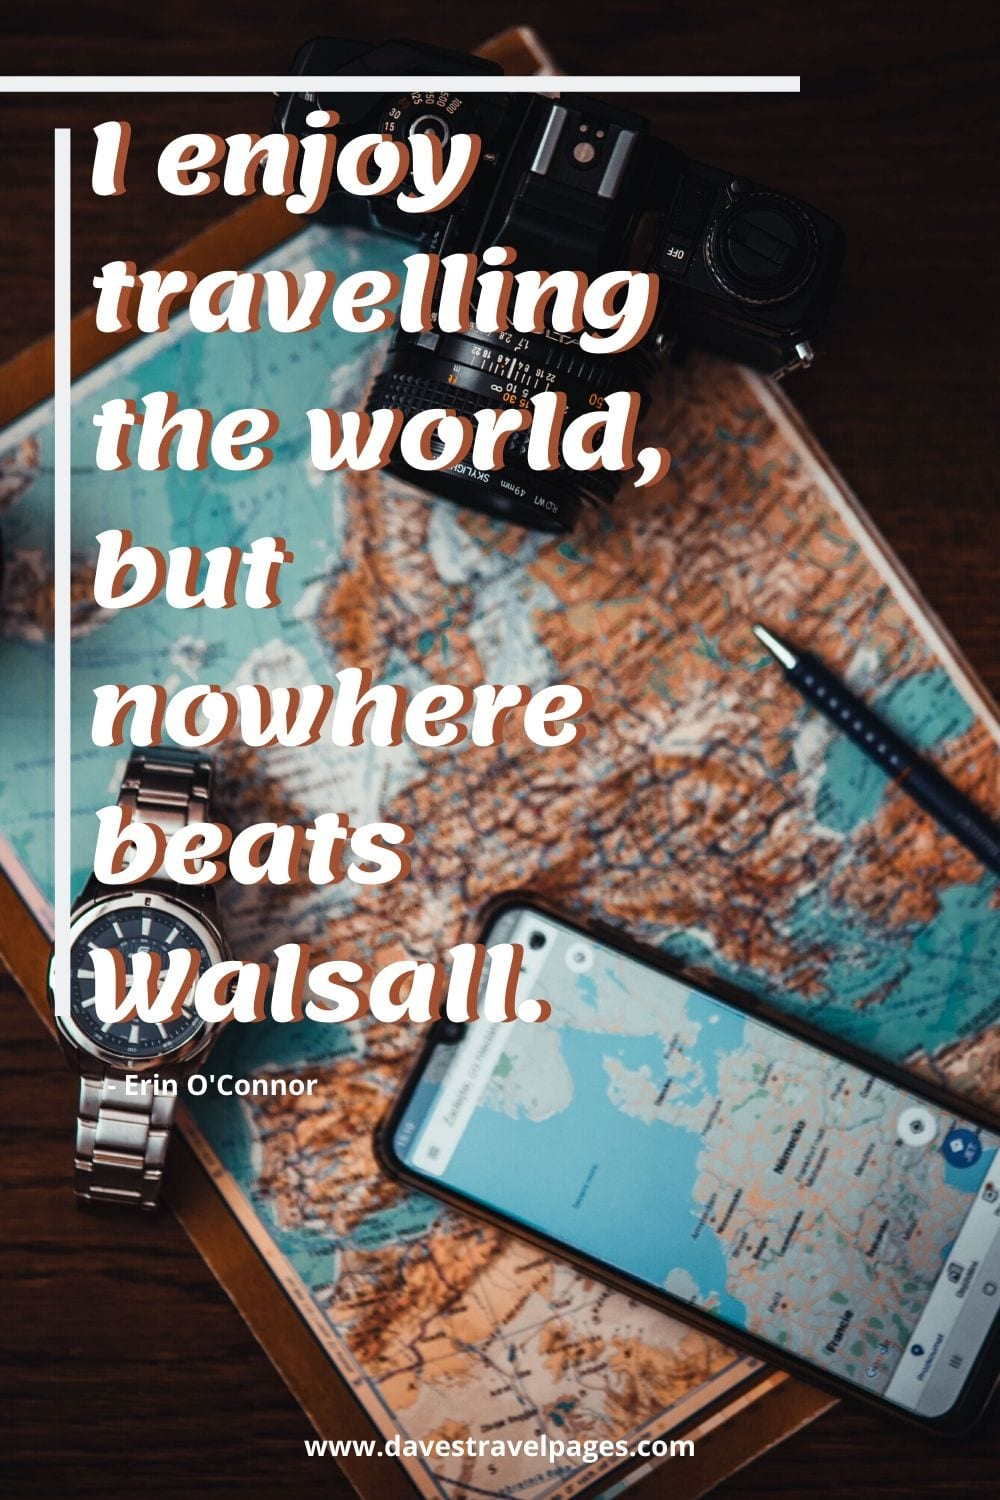 Funny travel quotes: I enjoy travelling the world, but nowhere beats Walsall. Erin O'Connor